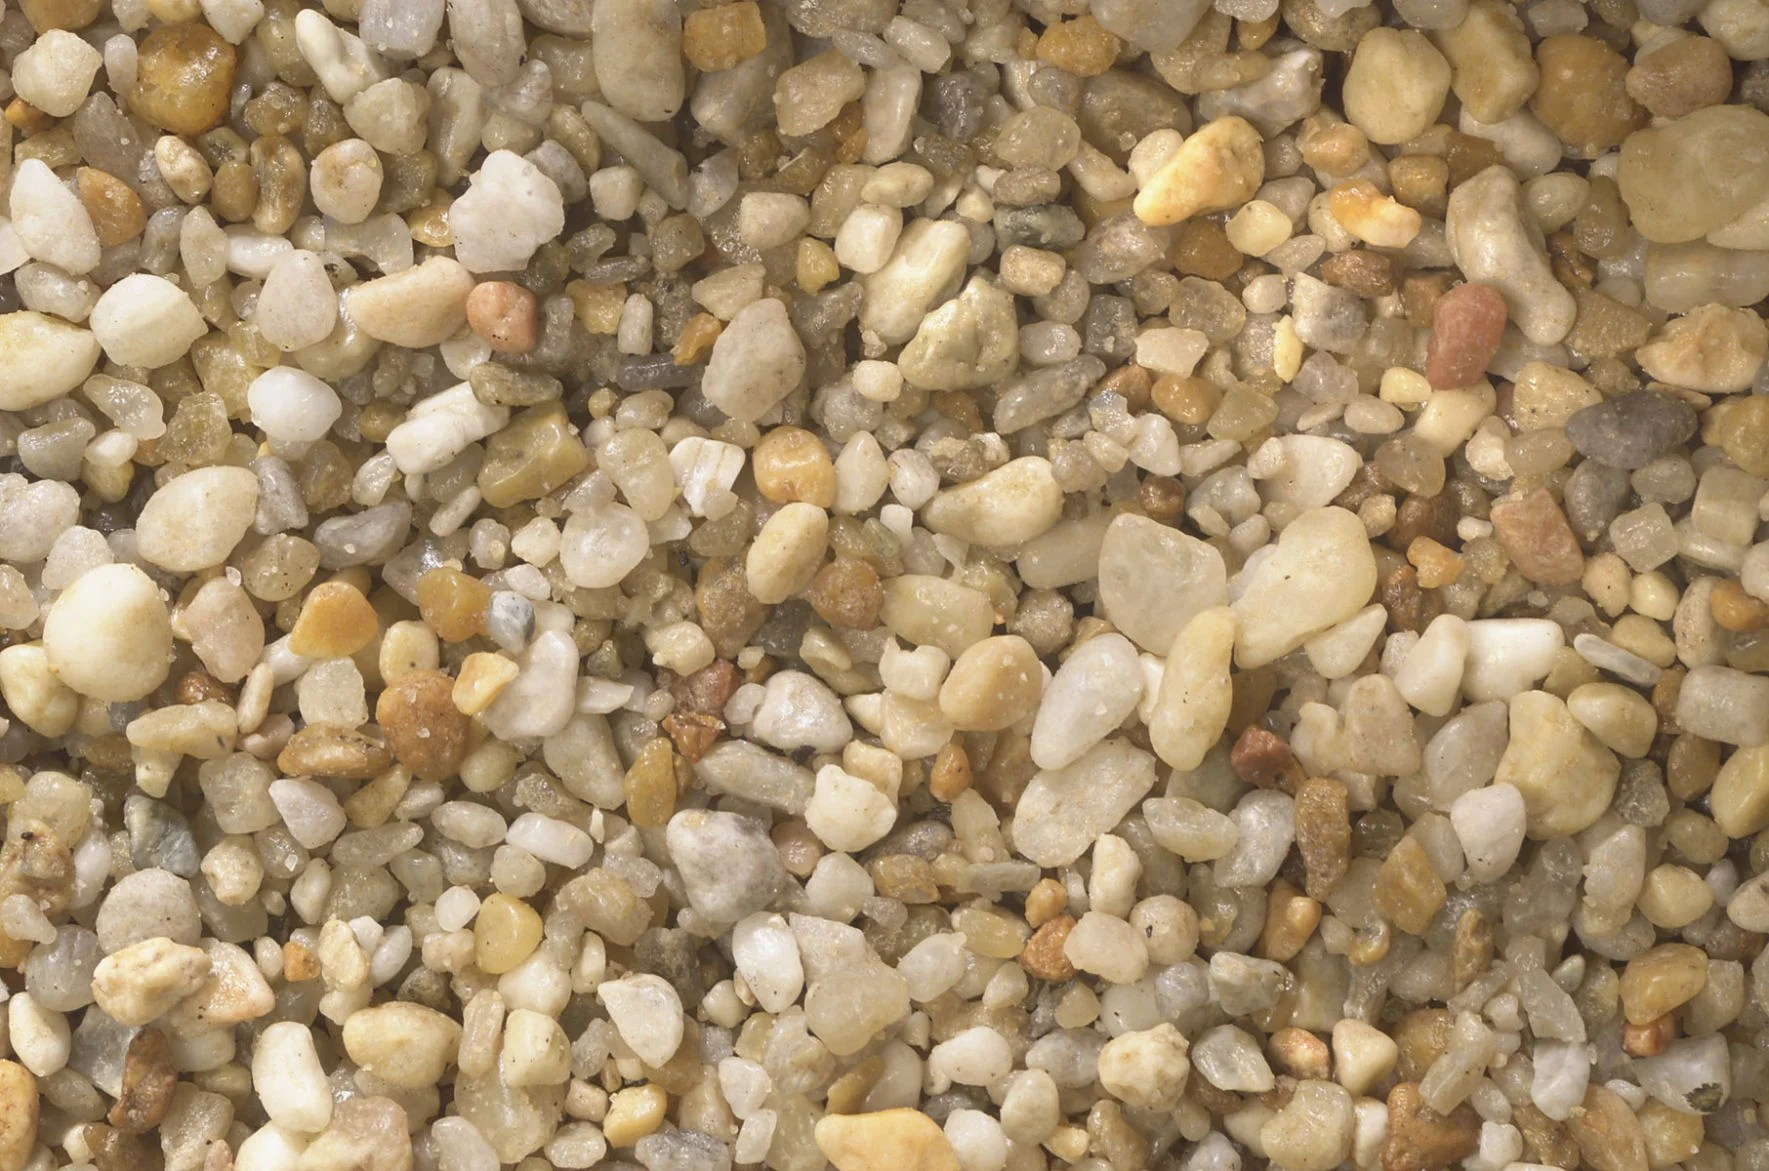 Pea Gravel Home Depot Fabulous Floors Spice Up Outdoor Entertaining Home And Garden